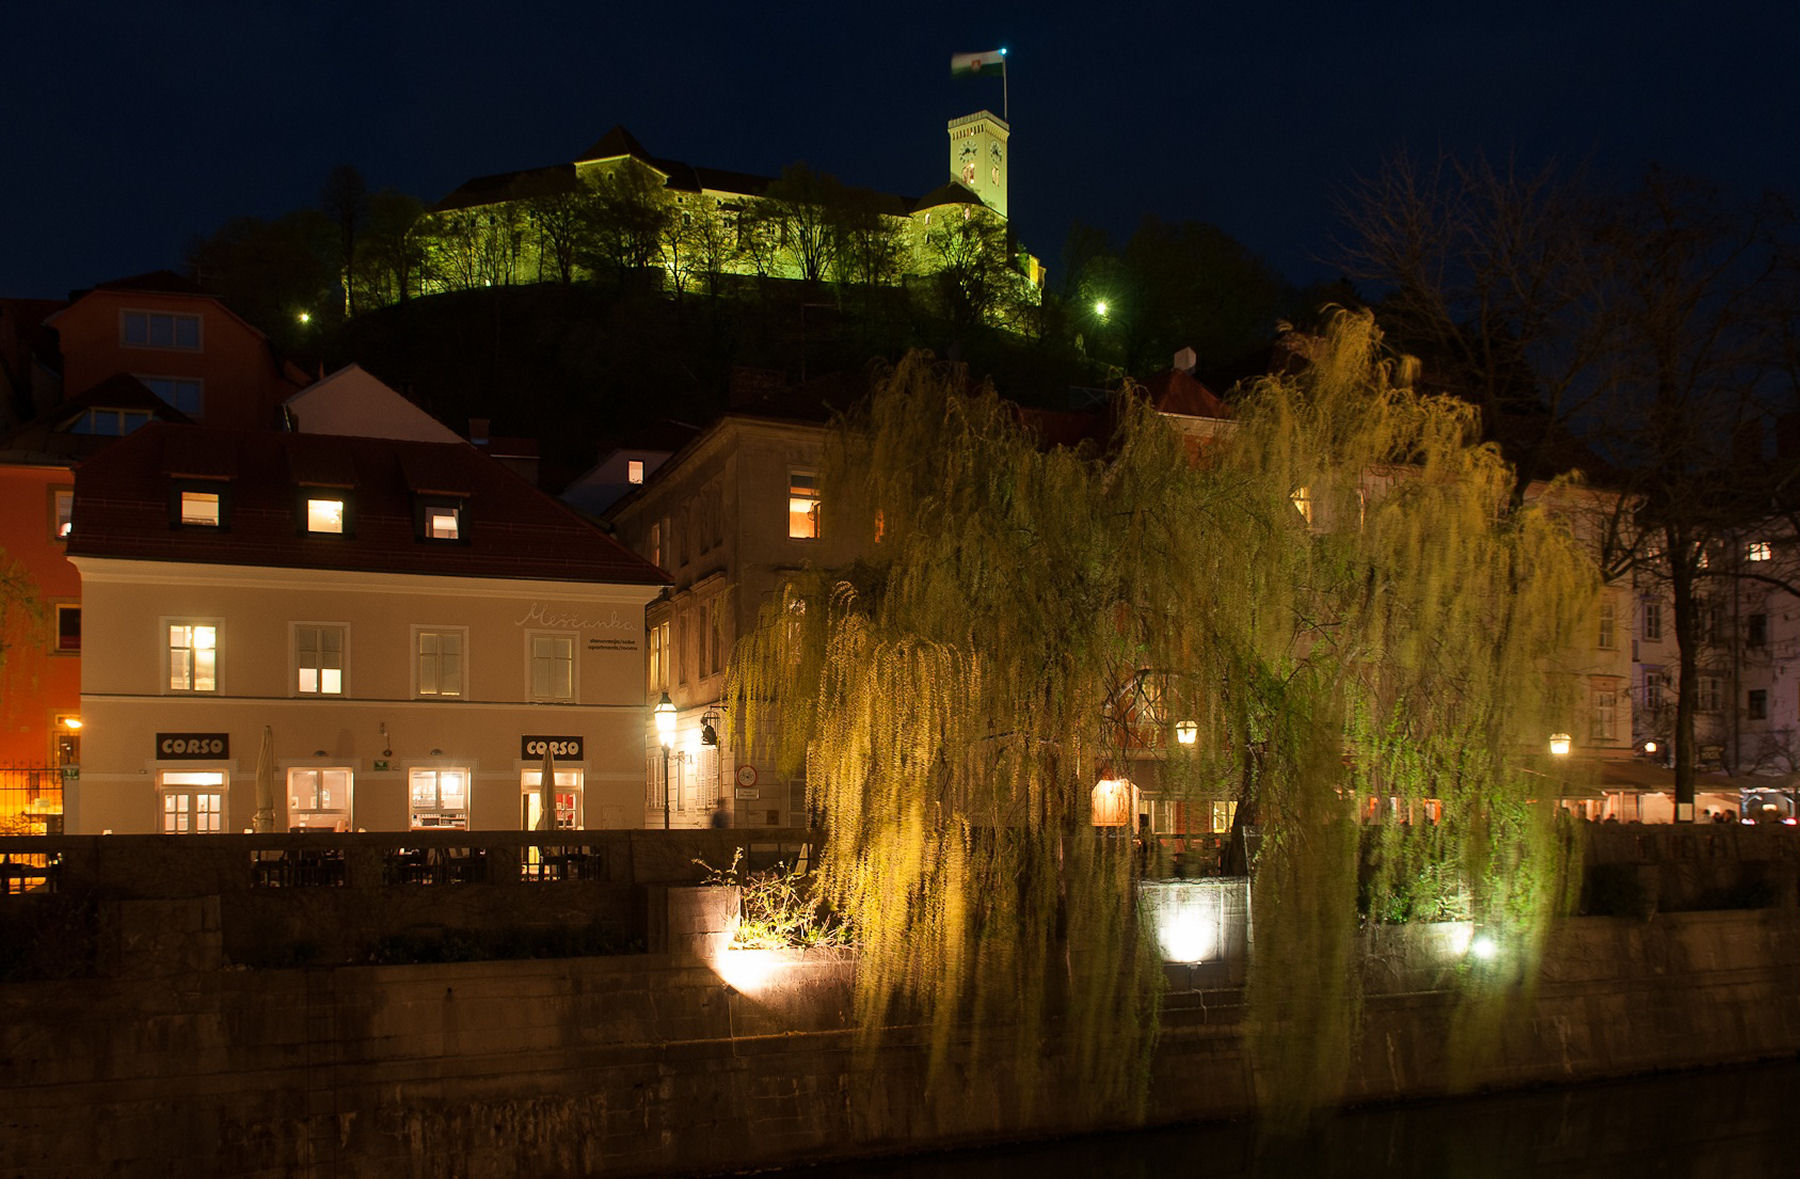 Another view of the Ljubljana castle at night